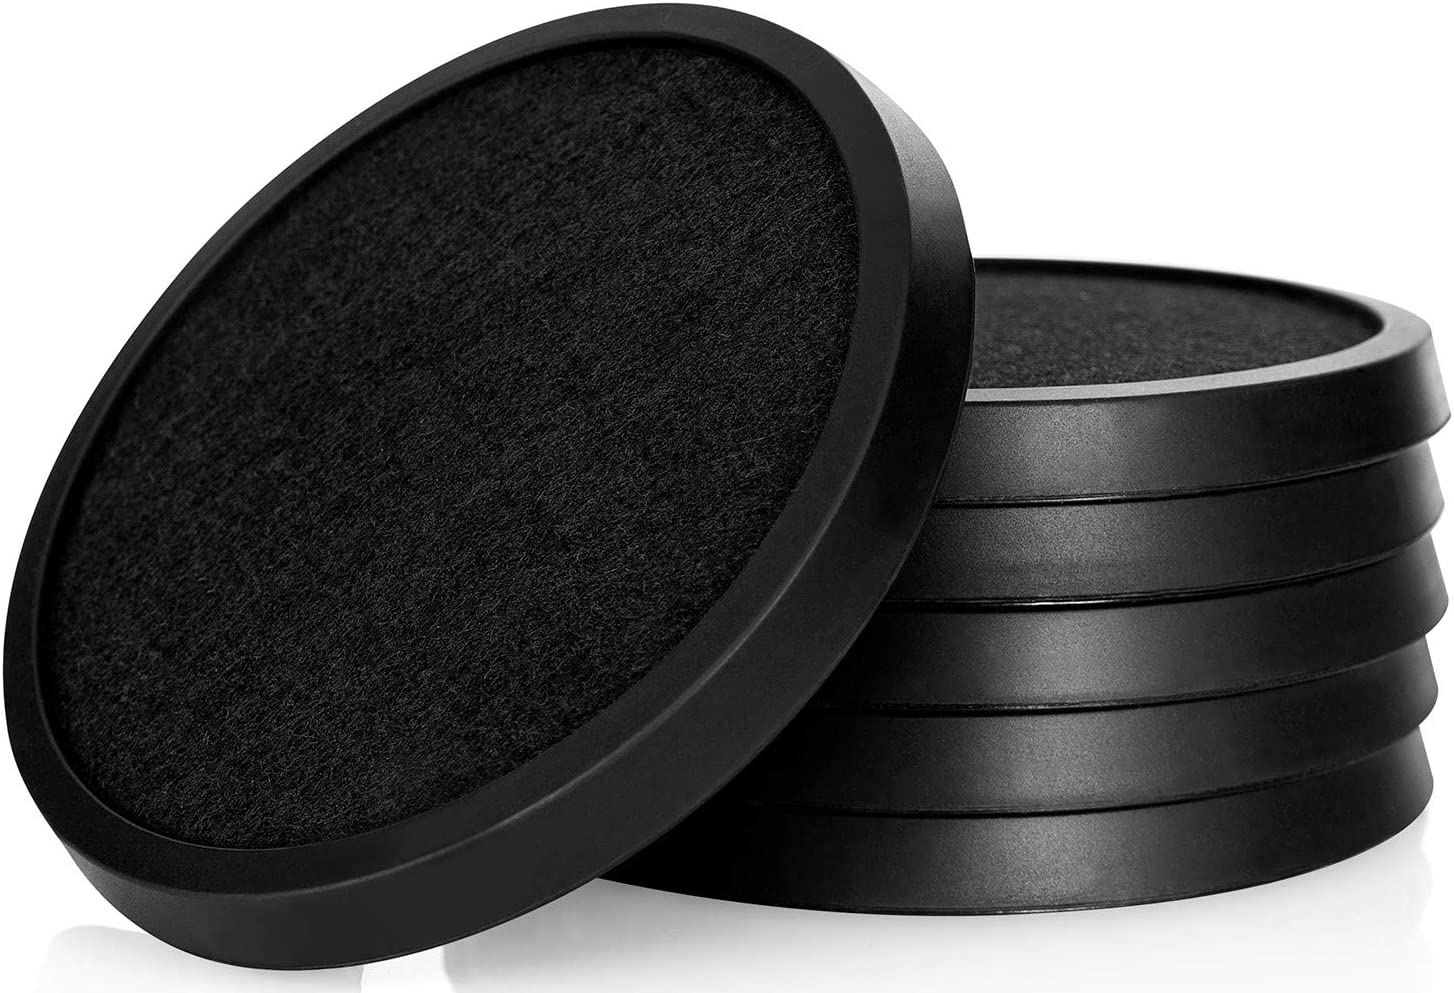 Comfortena Silicone Absorbent Coasters for Drinks | Protect Furniture from Water or Condensation Damage